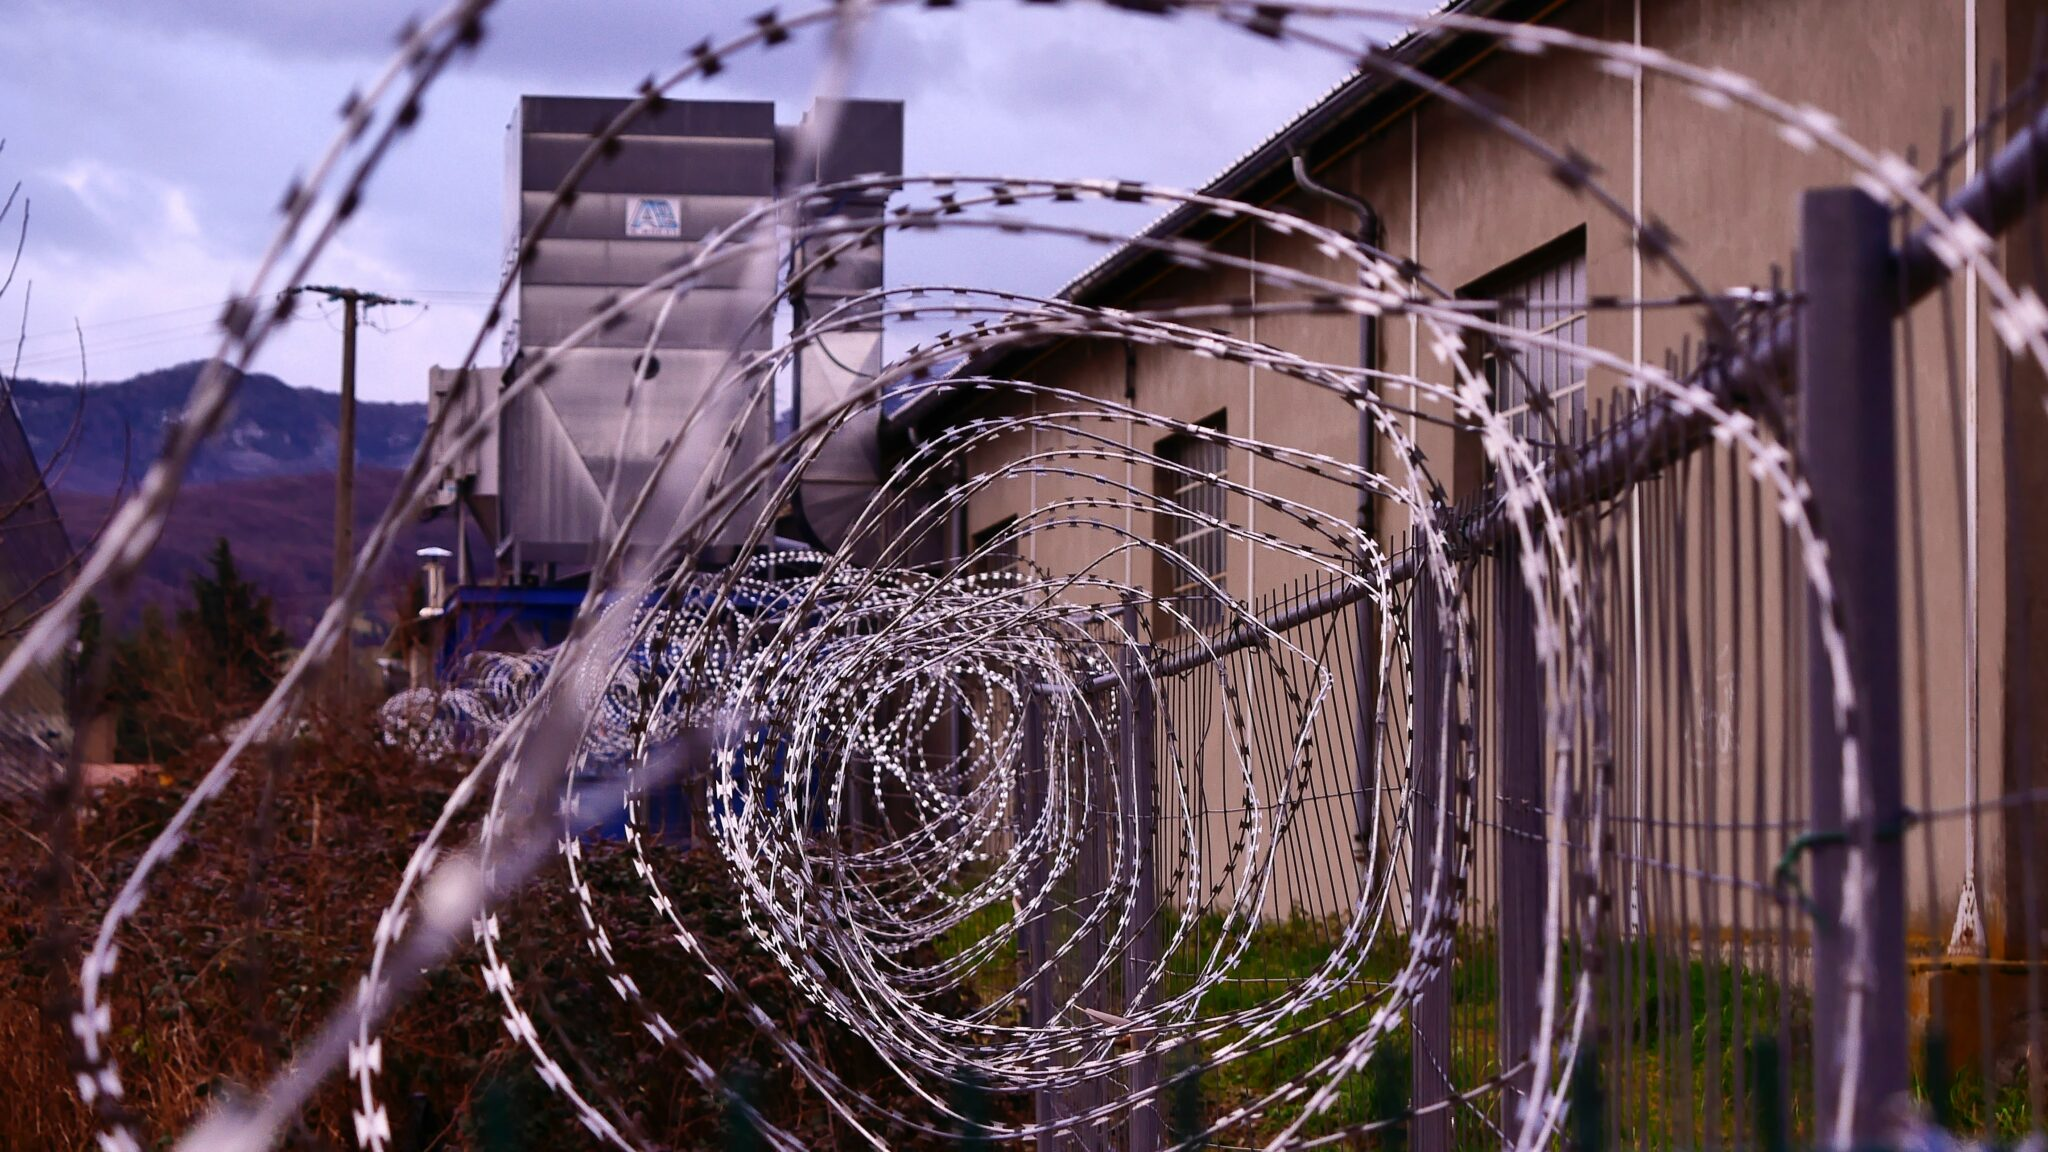 Can Life be 'Awesome' Behind Bars?